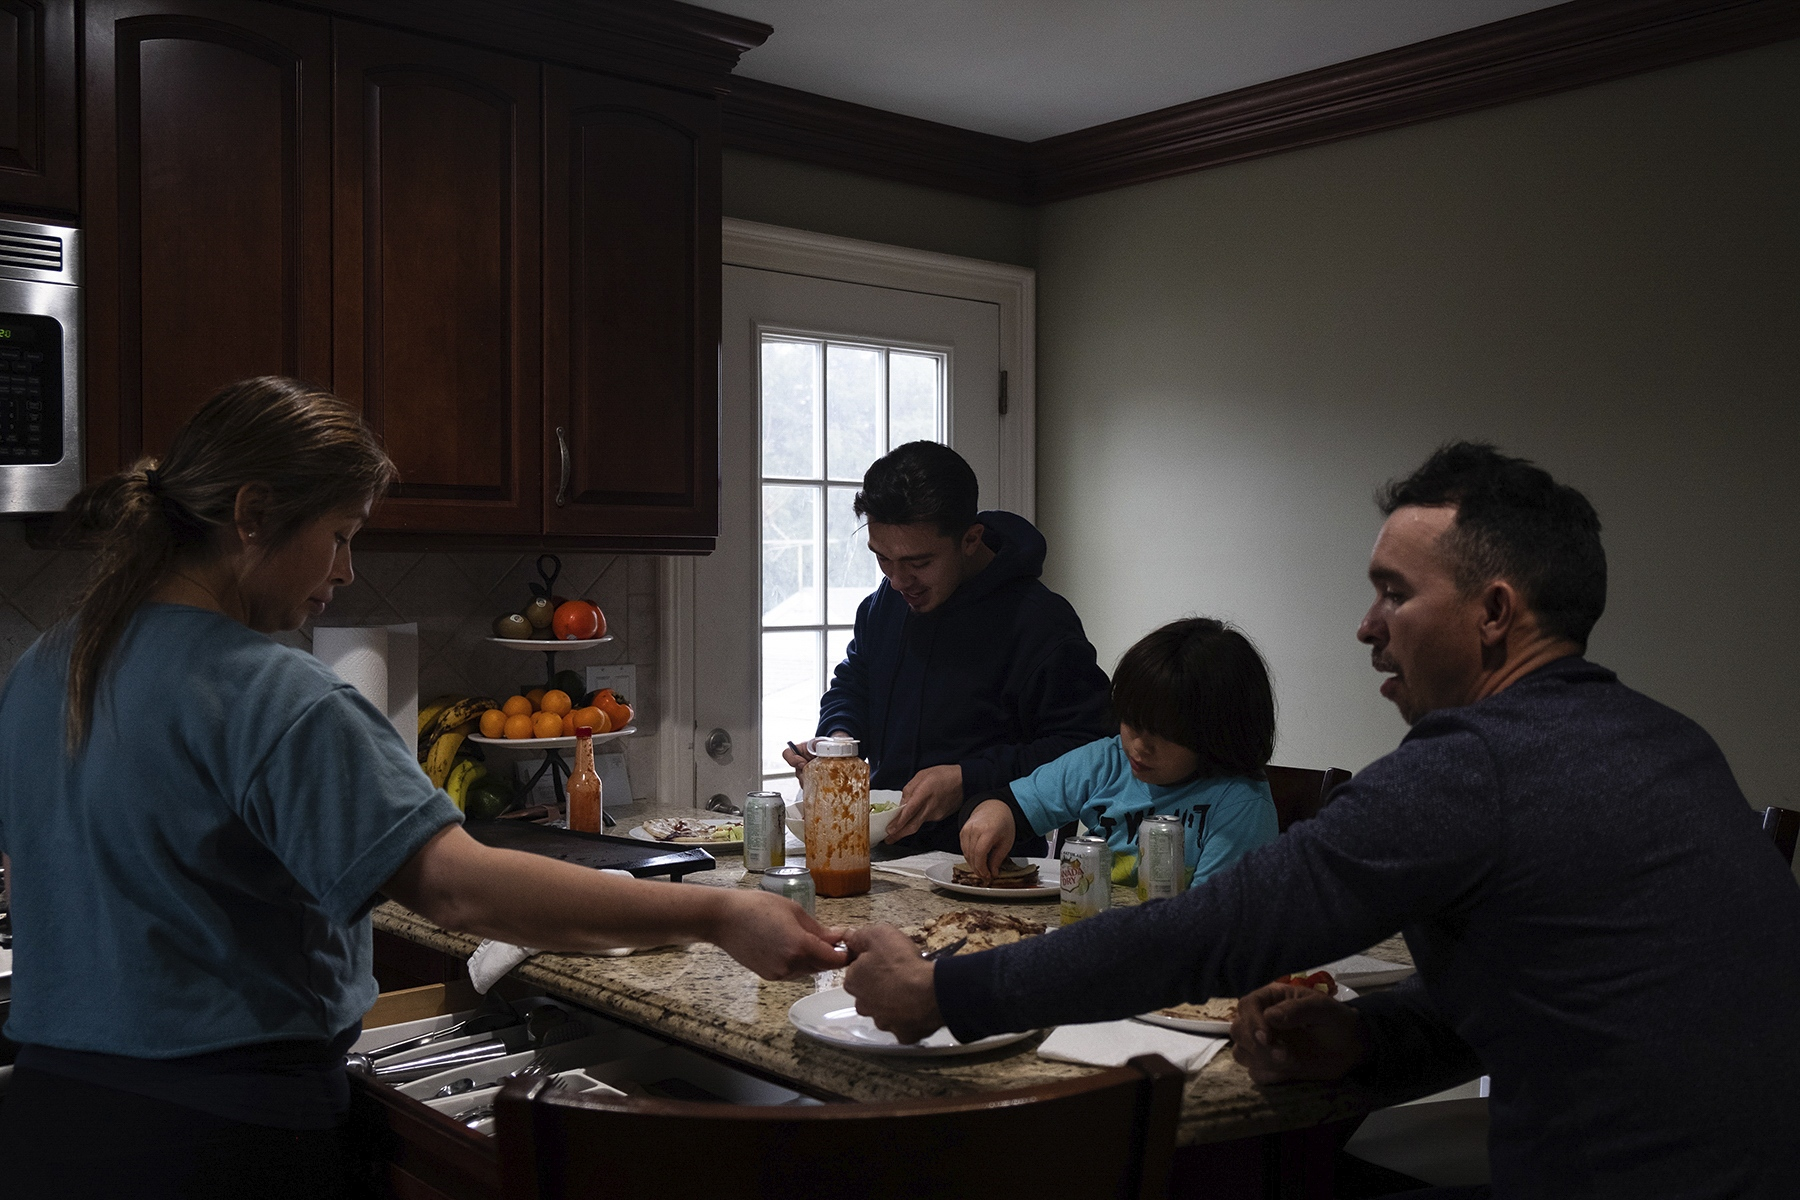 The Villalobos family gathers for lunch on Sunday afternoon, their only day off work. While Erik helps his father with his landscaping business, his mother, María Villalobos, works as a florist in a local shop.